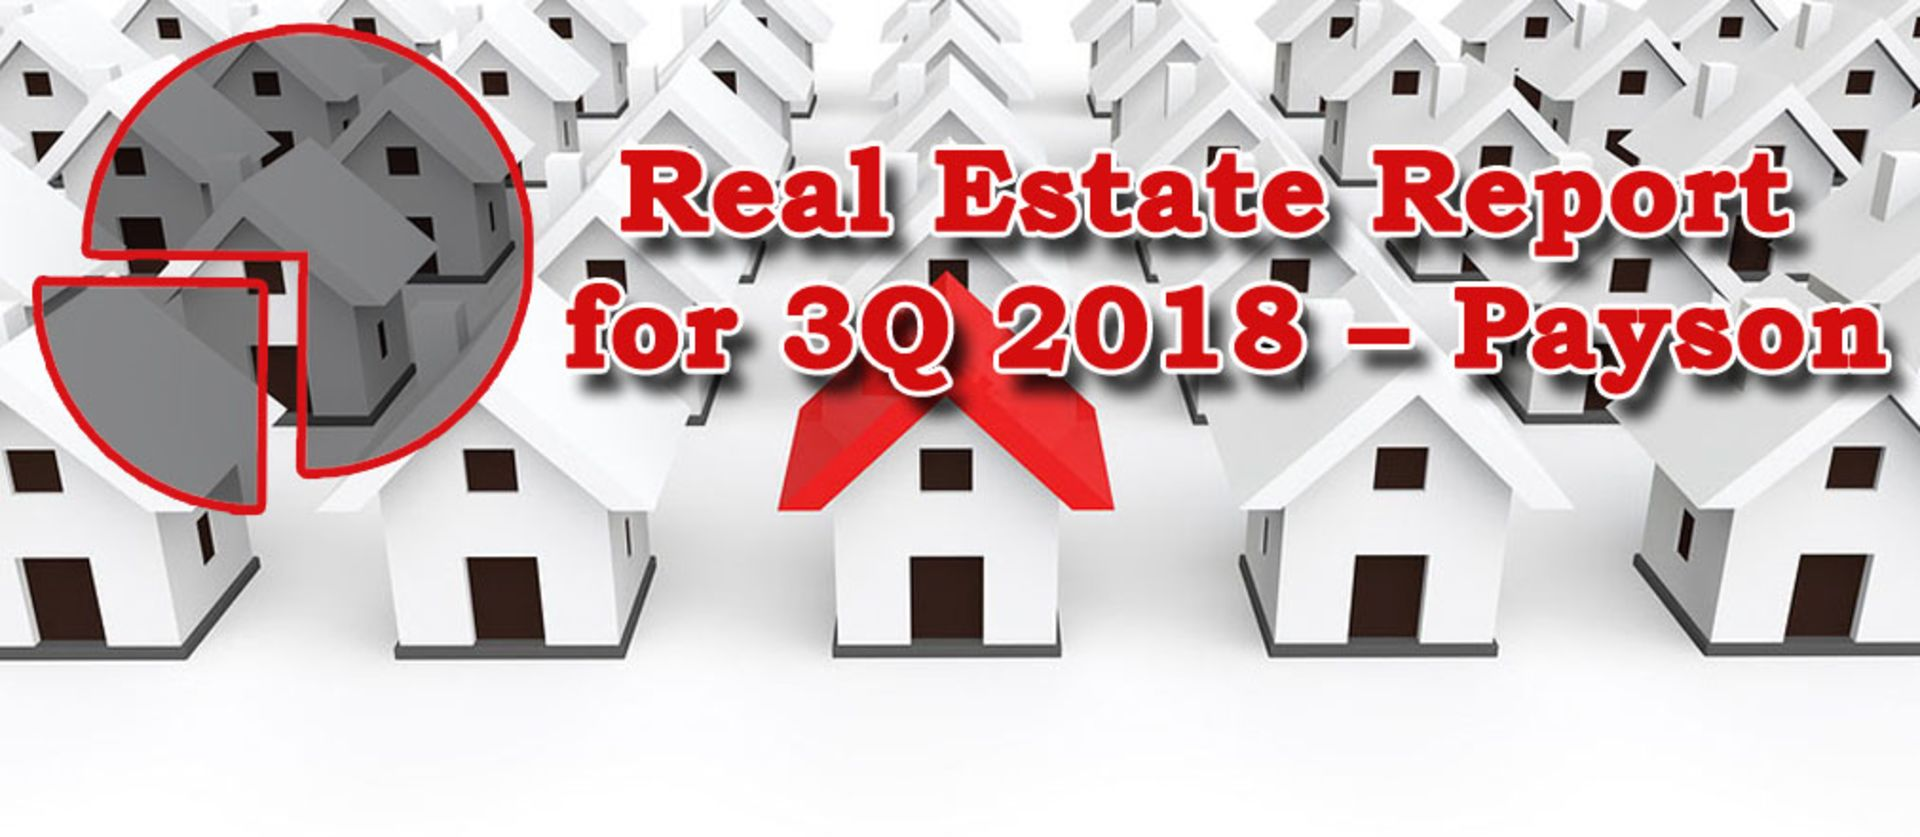 What has happened with the 2018 Real Estate Market